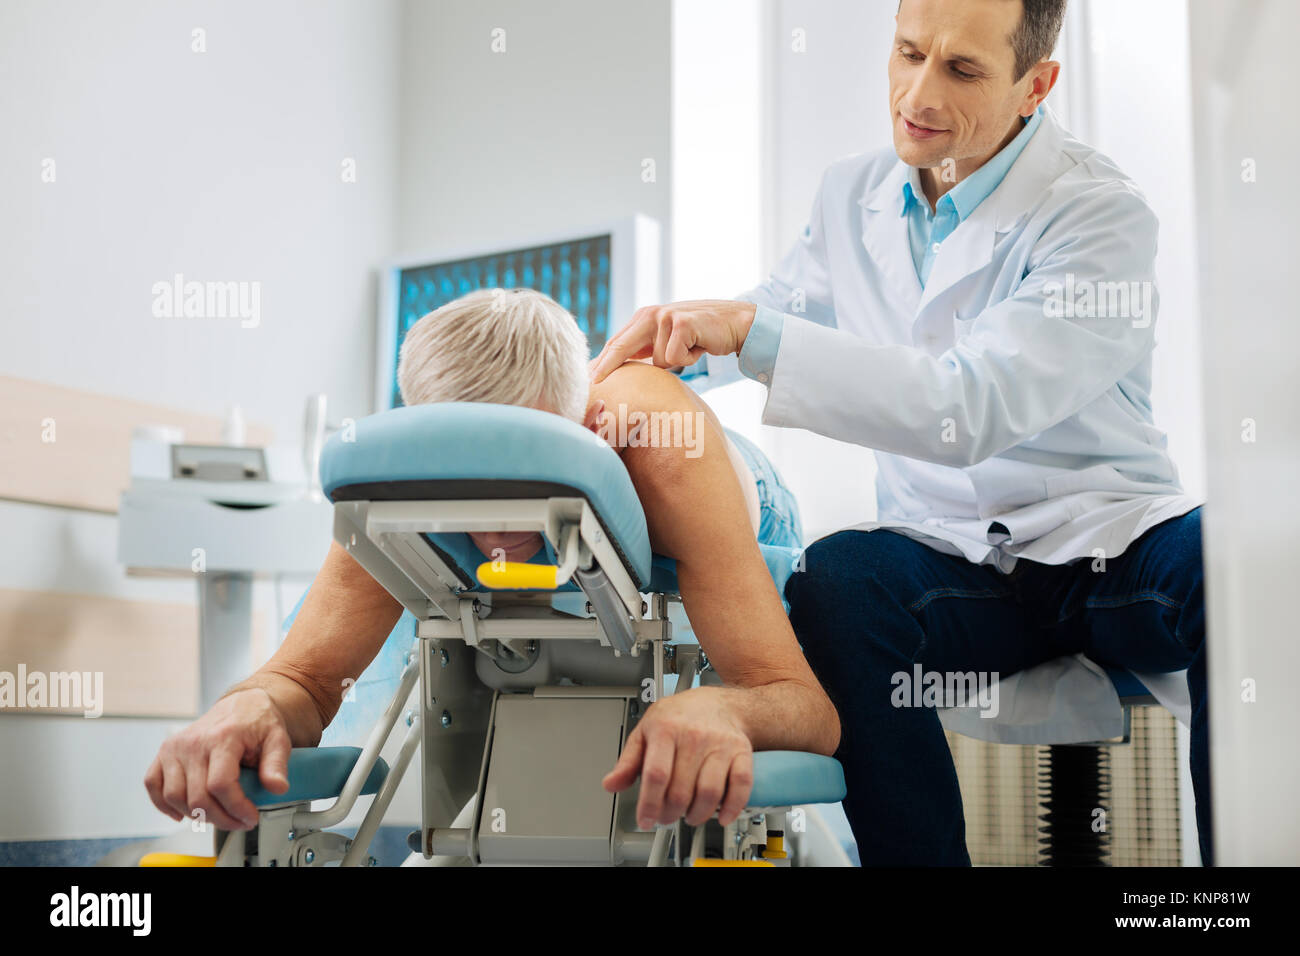 Professional male doctor treating his patient - Stock Image